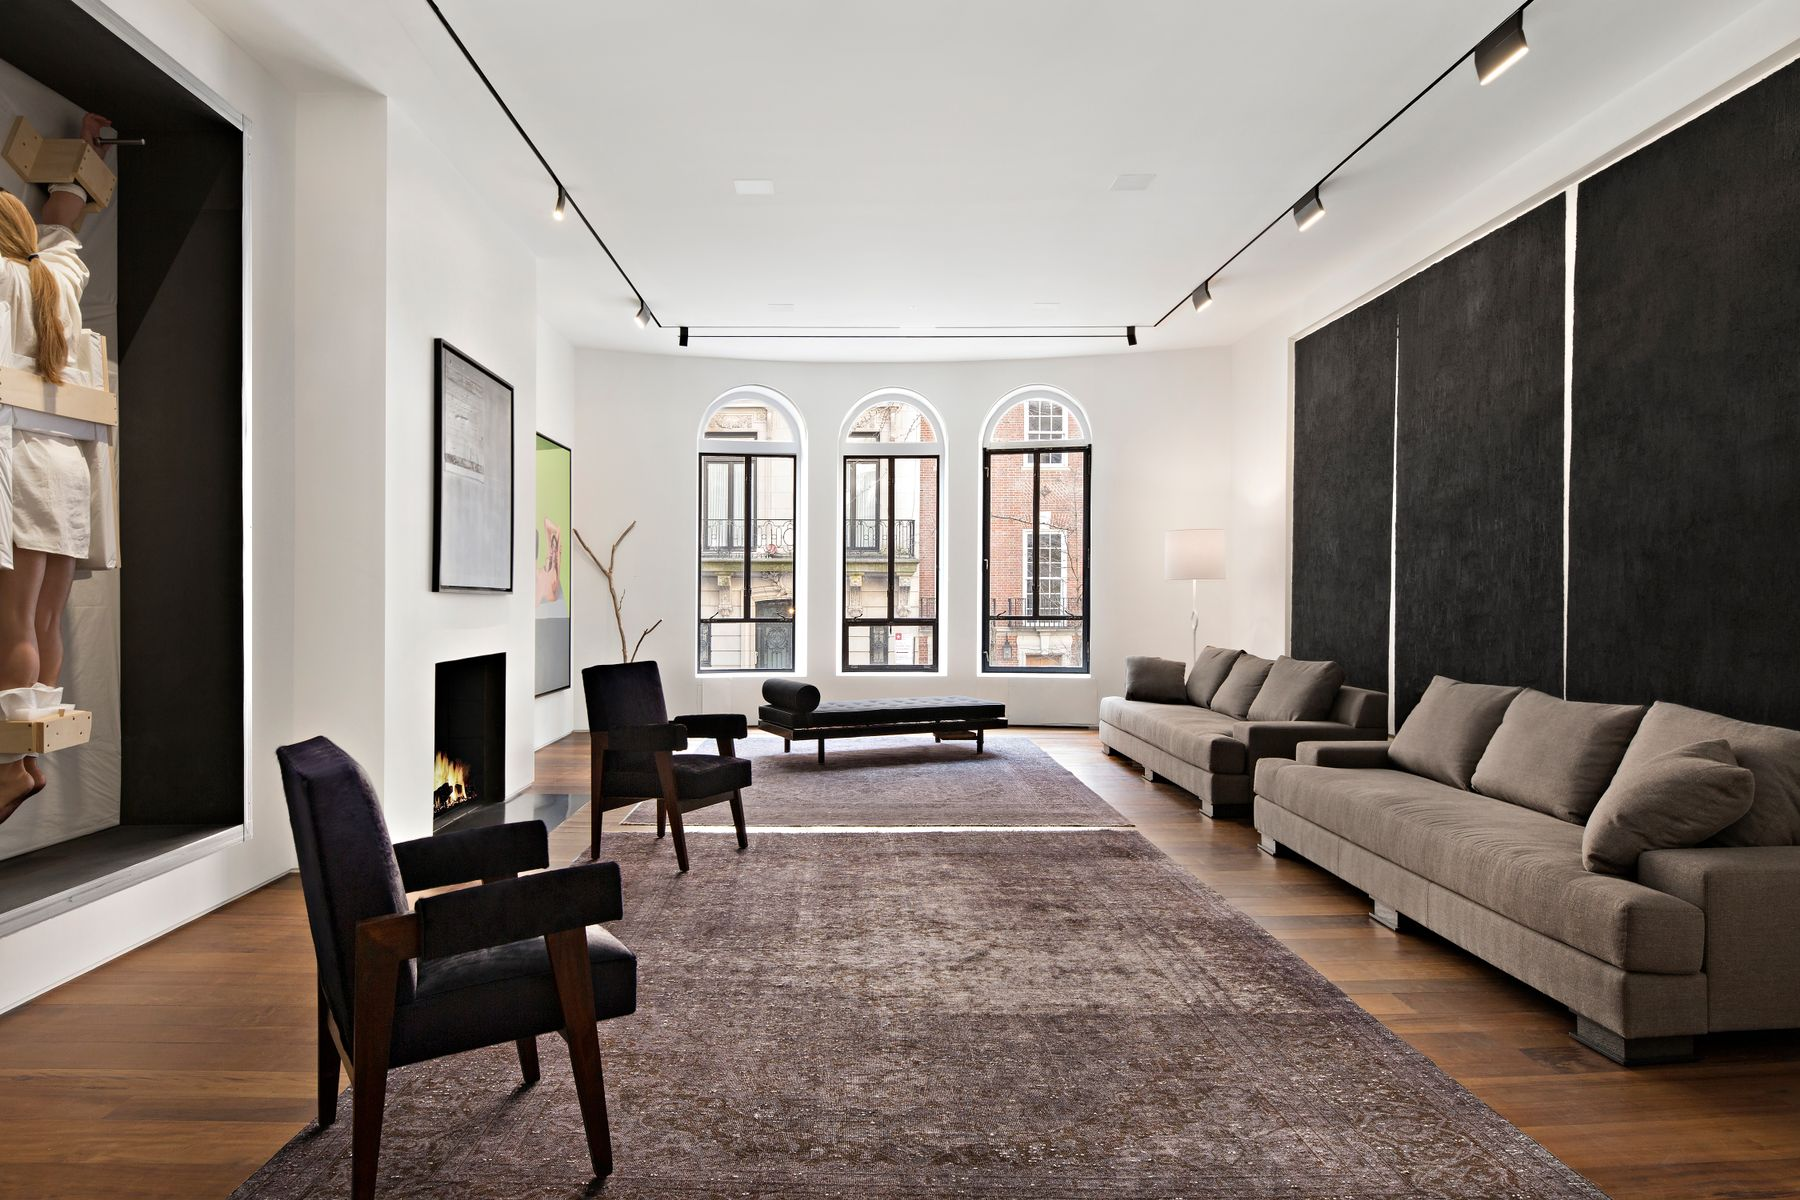 Co-op for Sale at 17 East 73rd Street, Apt. 2 17 East 73rd Street Apt 2 New York, New York 10021 United States